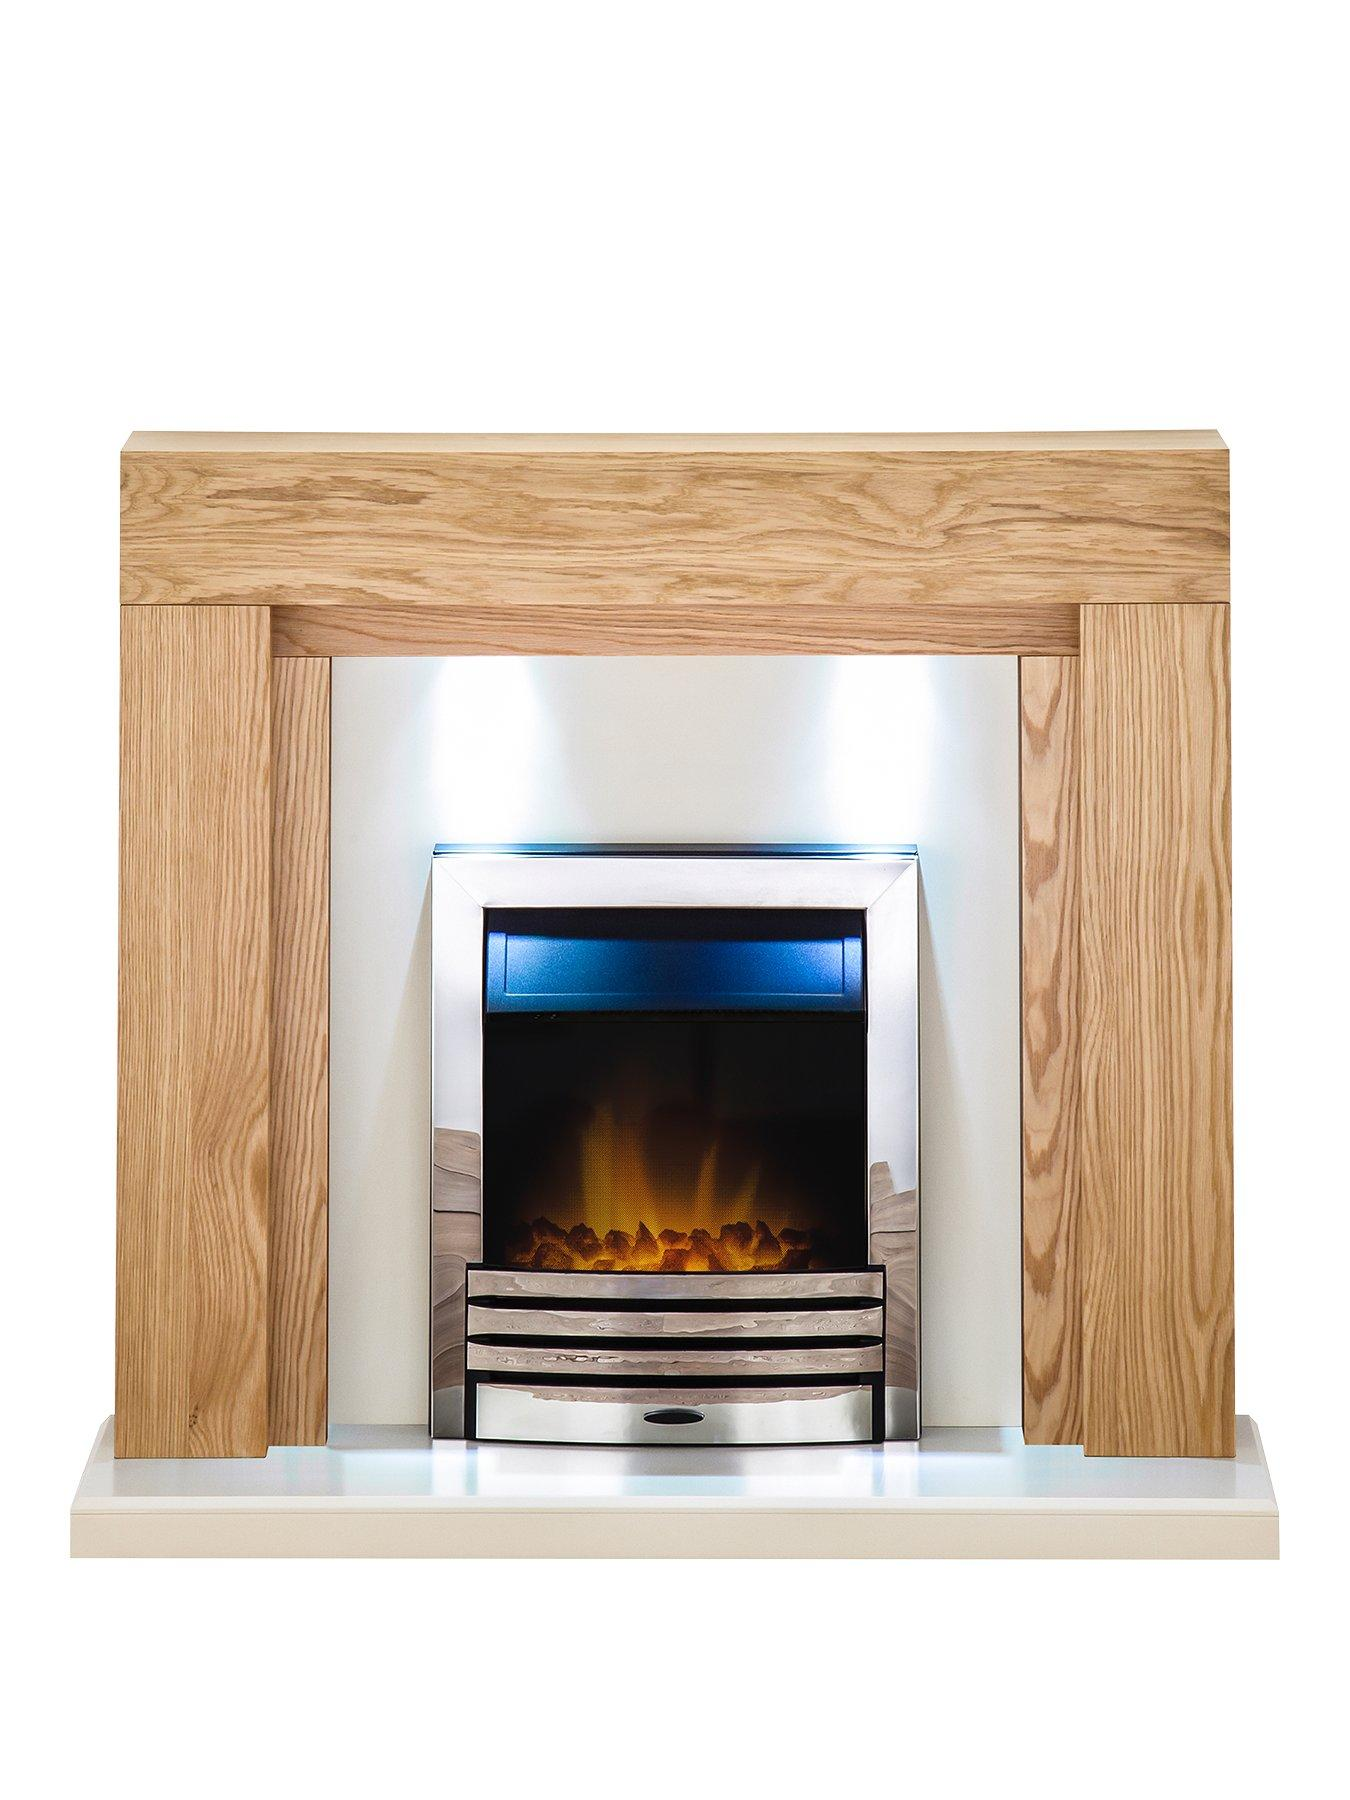 Compare prices for Adam Fire Surrounds Beaumont Fireplace Suite In Oak With Eclipse Electric Fire In Chrome